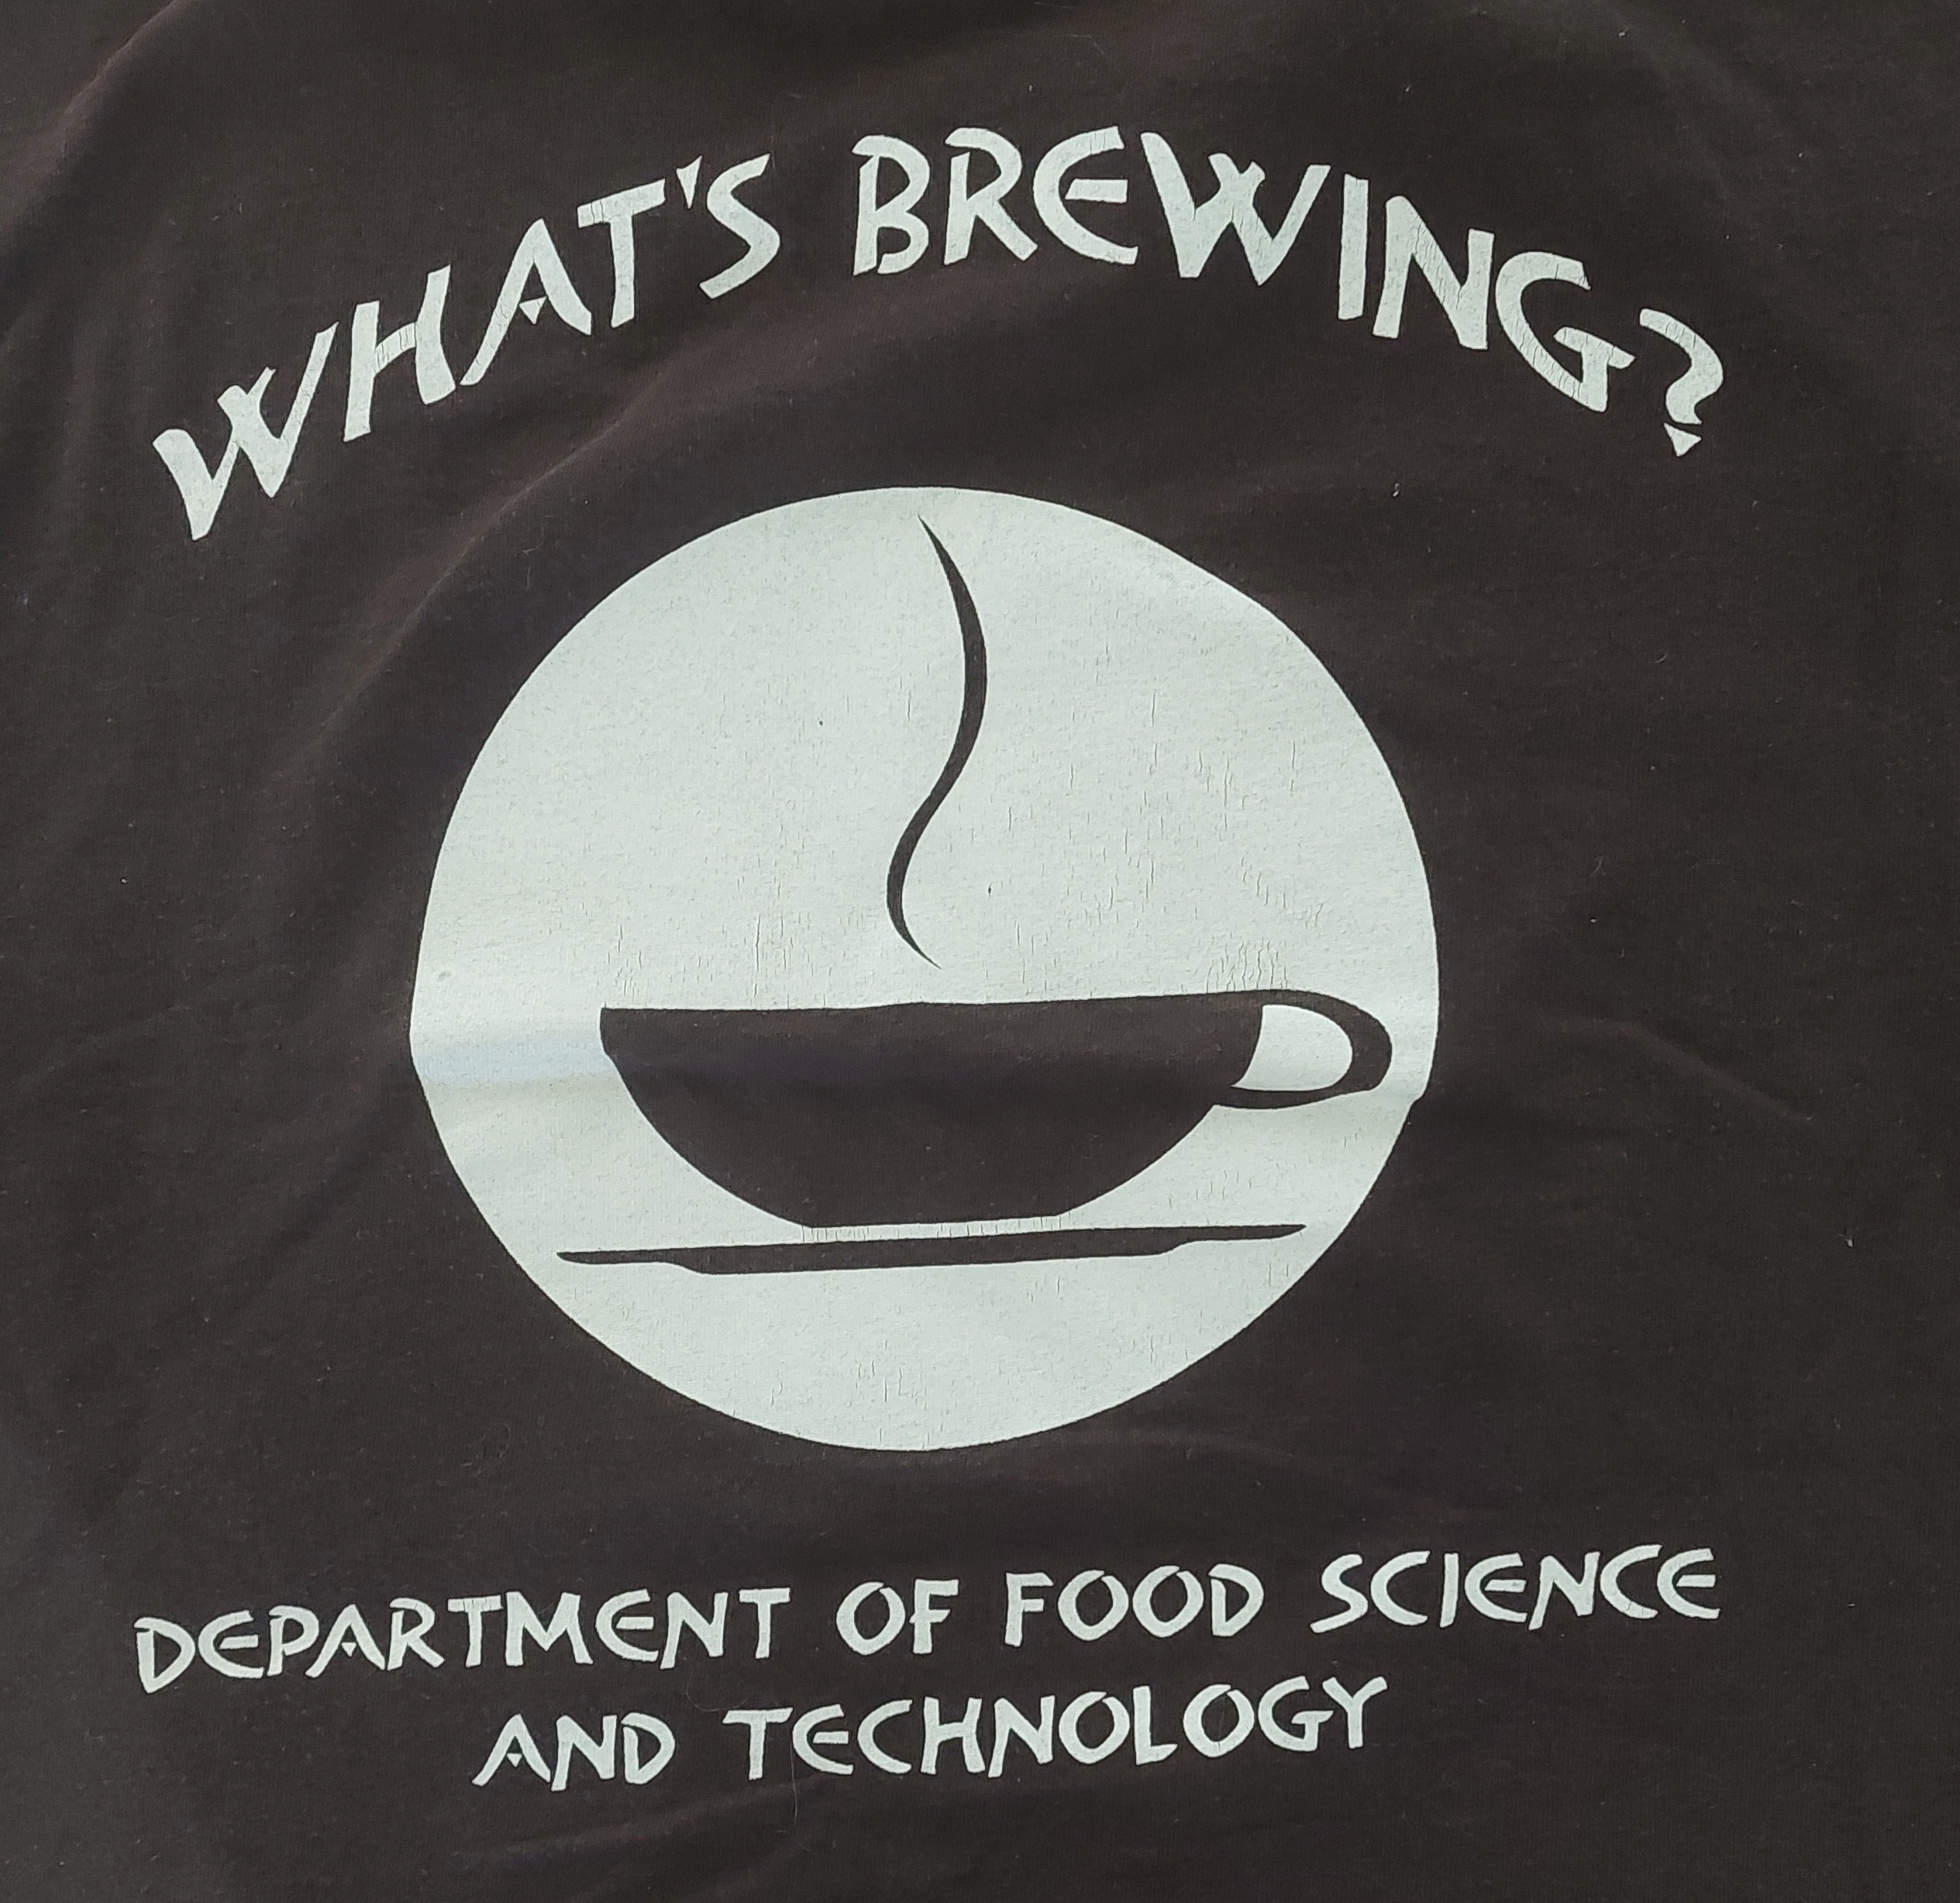 tee shirt with a warm cup of coffee asking What's brewing